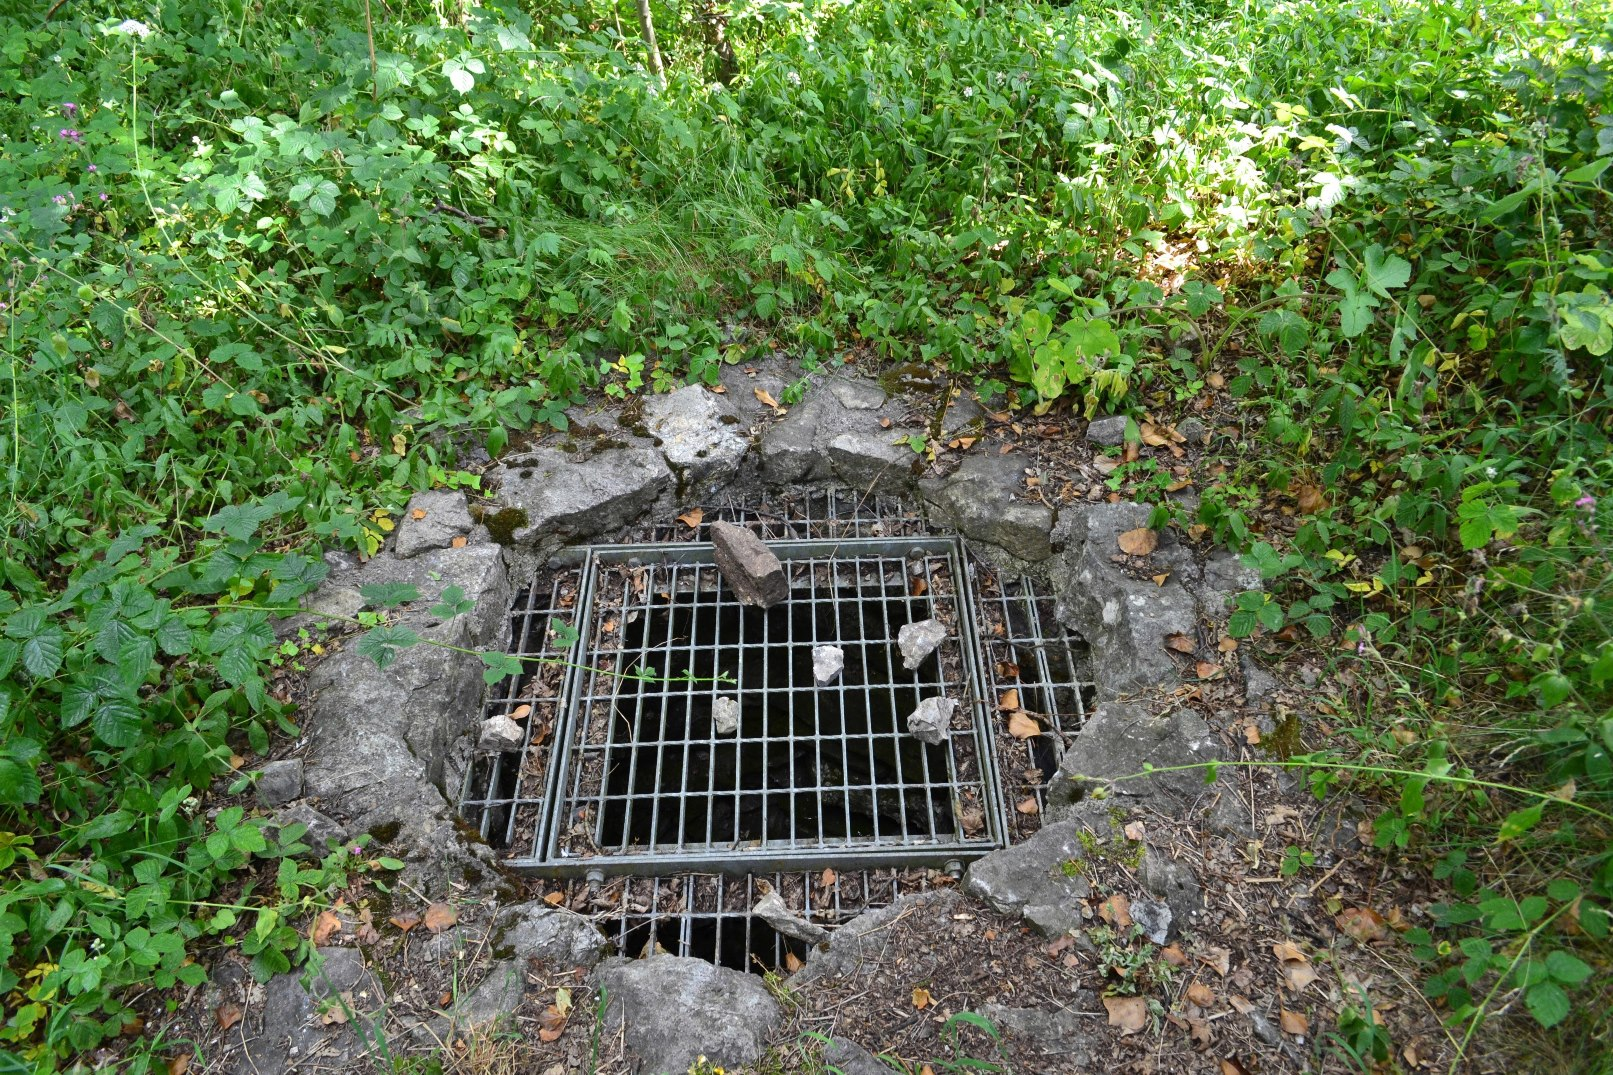 Mine entry shaft